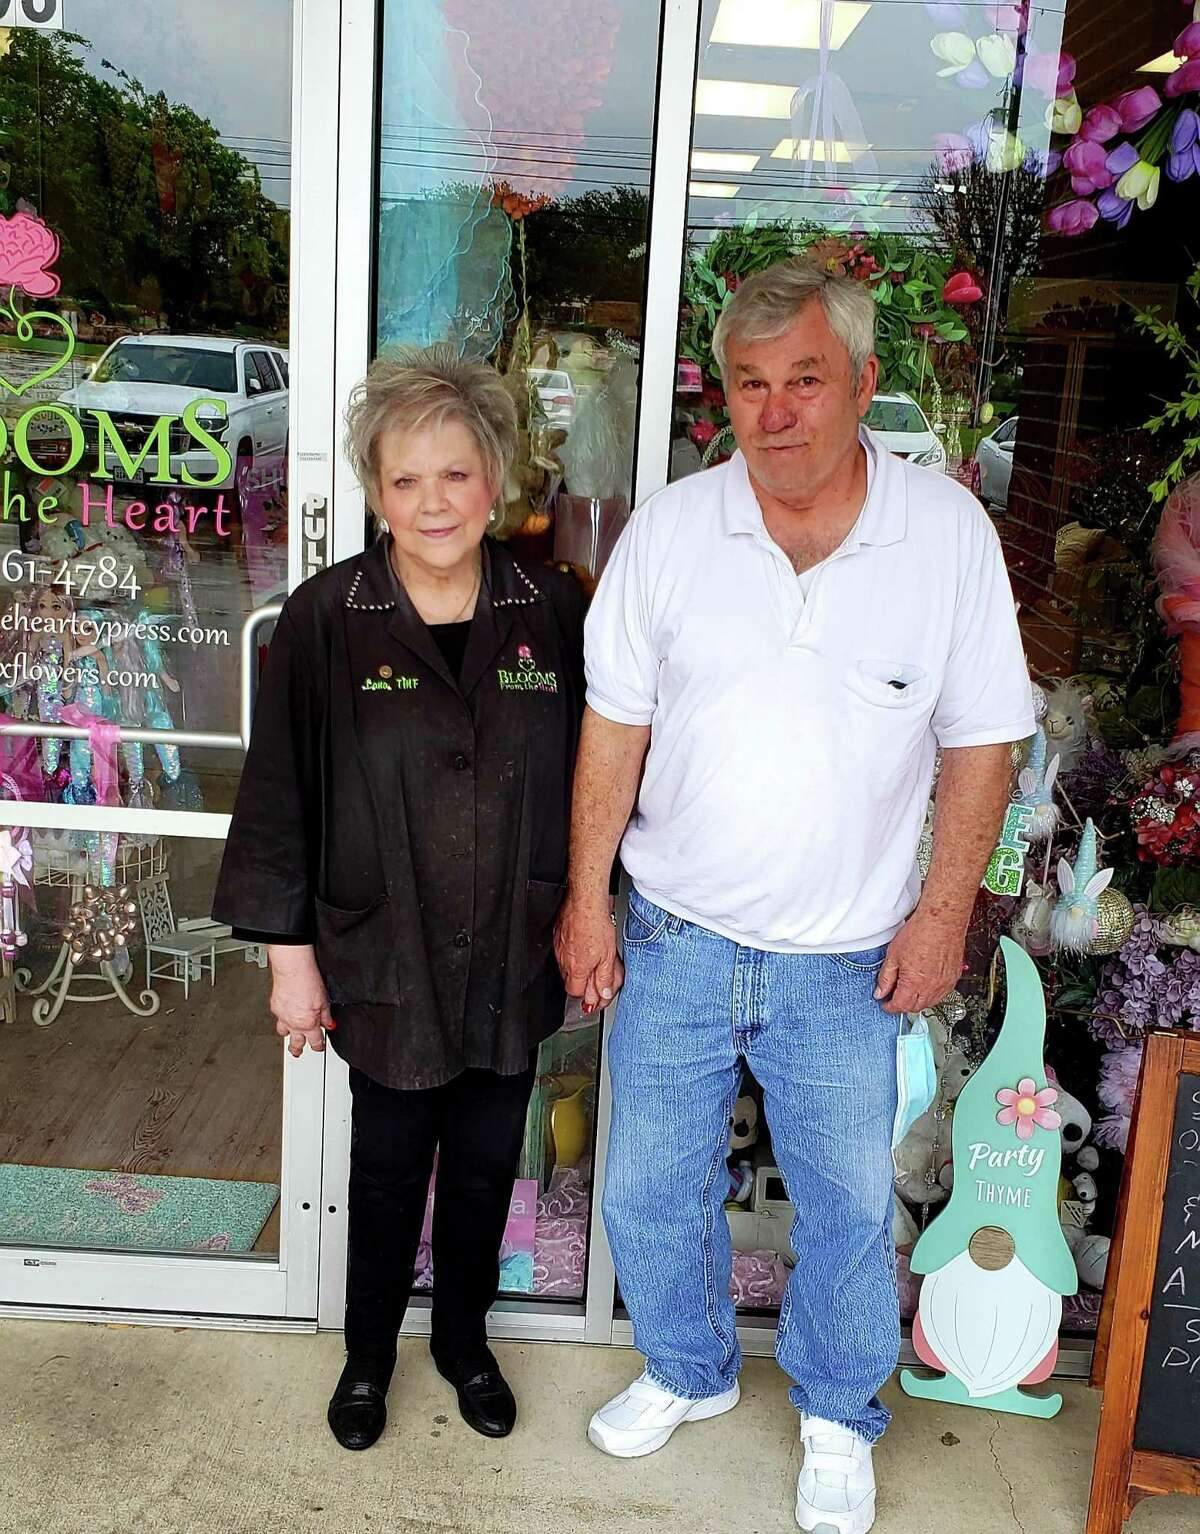 Lana King is joined at the story by her husband Samuel who she says is an integral part of the business. Samuel was laid off at the beginning of the pandemic from his job of 40 years in oil and gas.